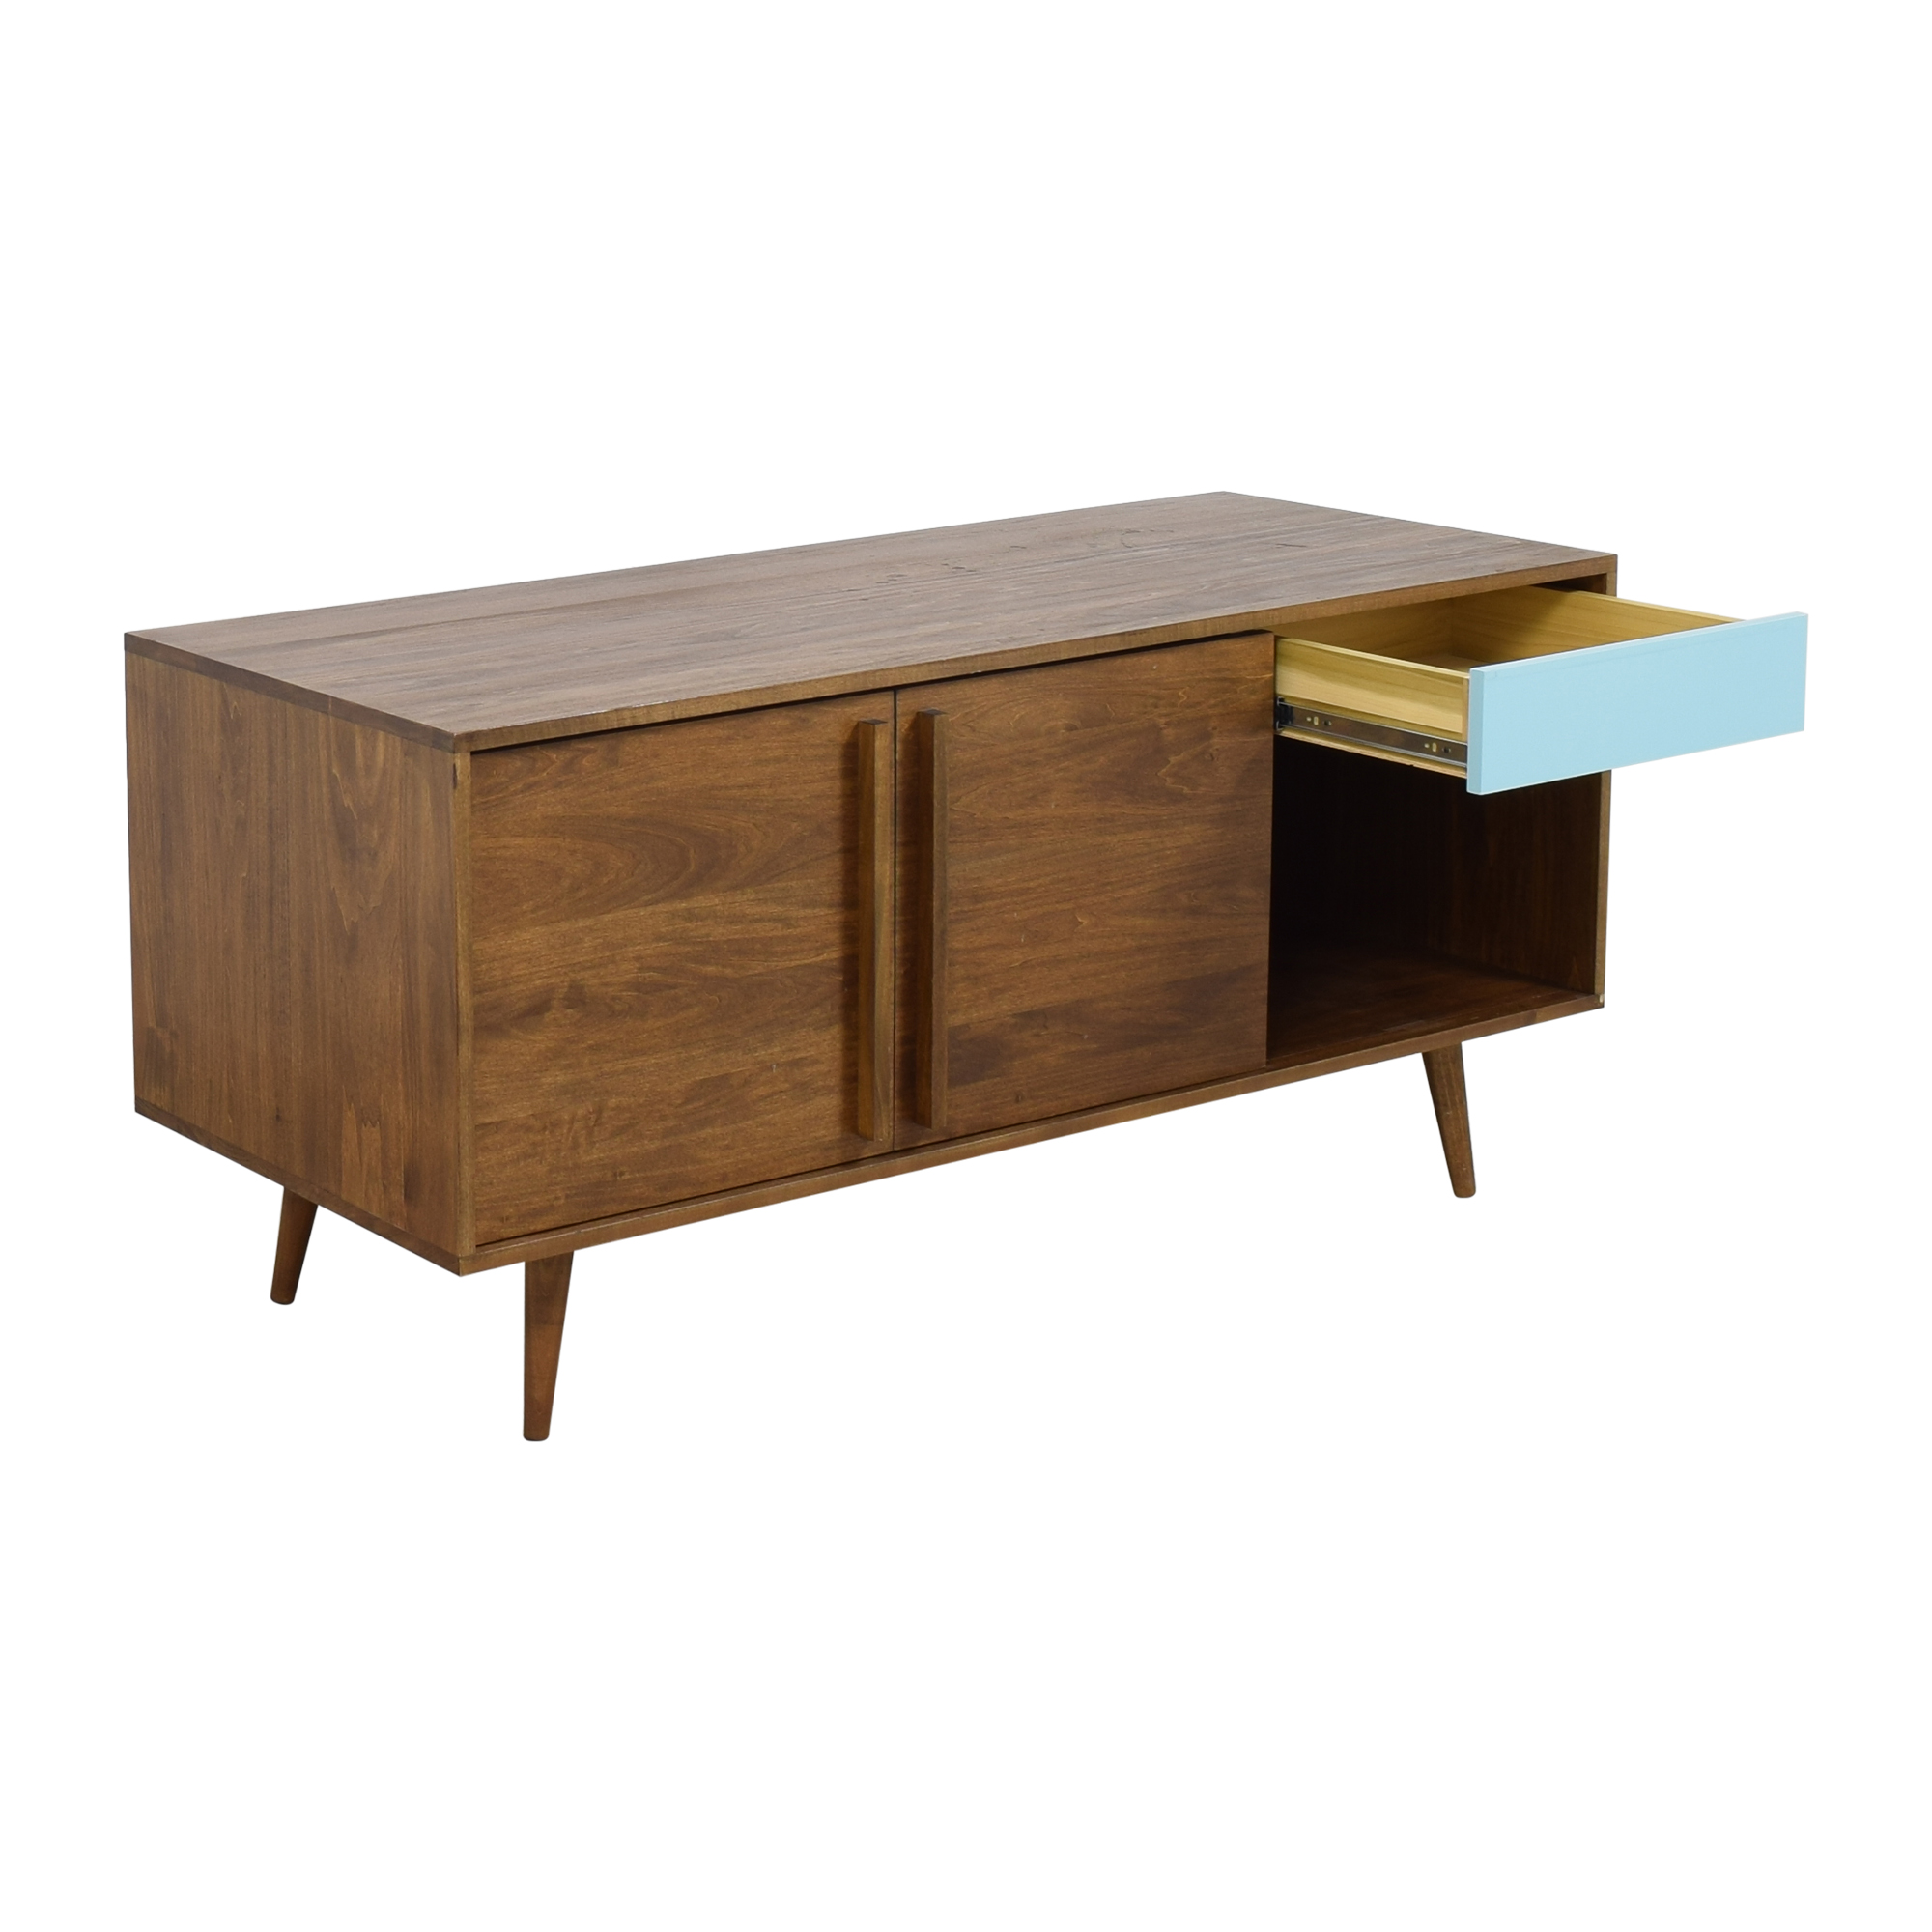 Design Within Reach Sliding Door Credenza / Storage